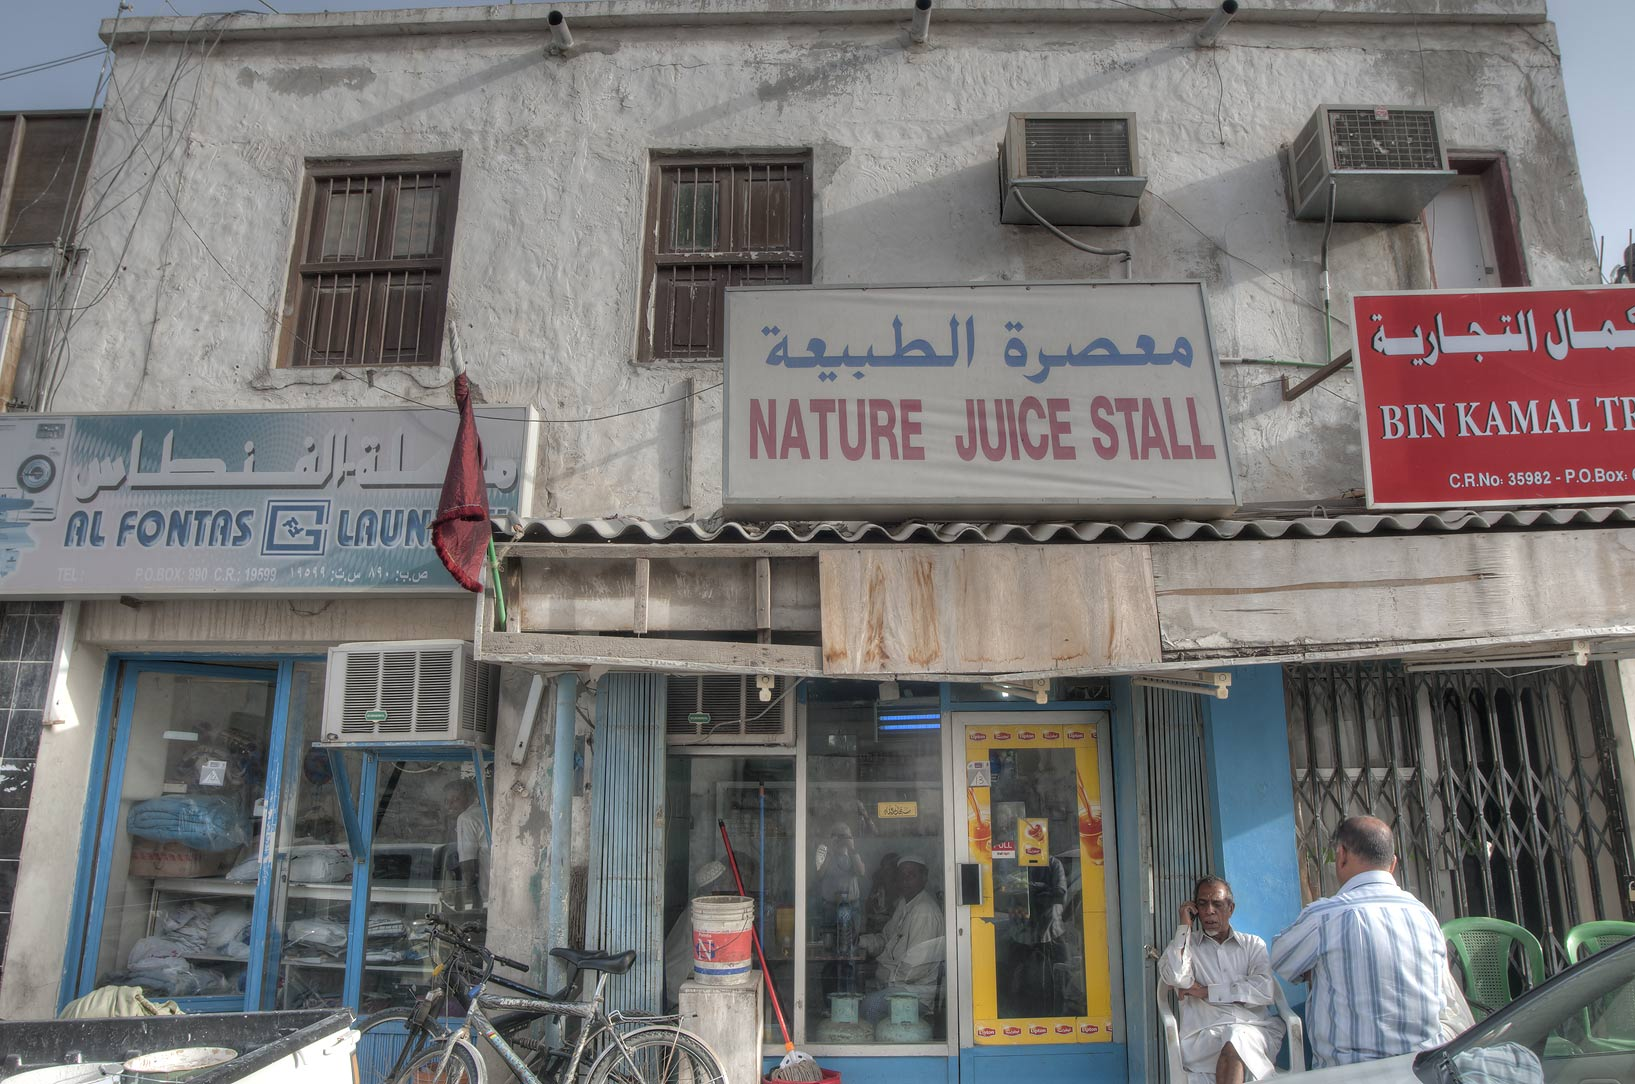 Nature Juice Stall in area of Al Mijdaf St.. Doha, Qatar